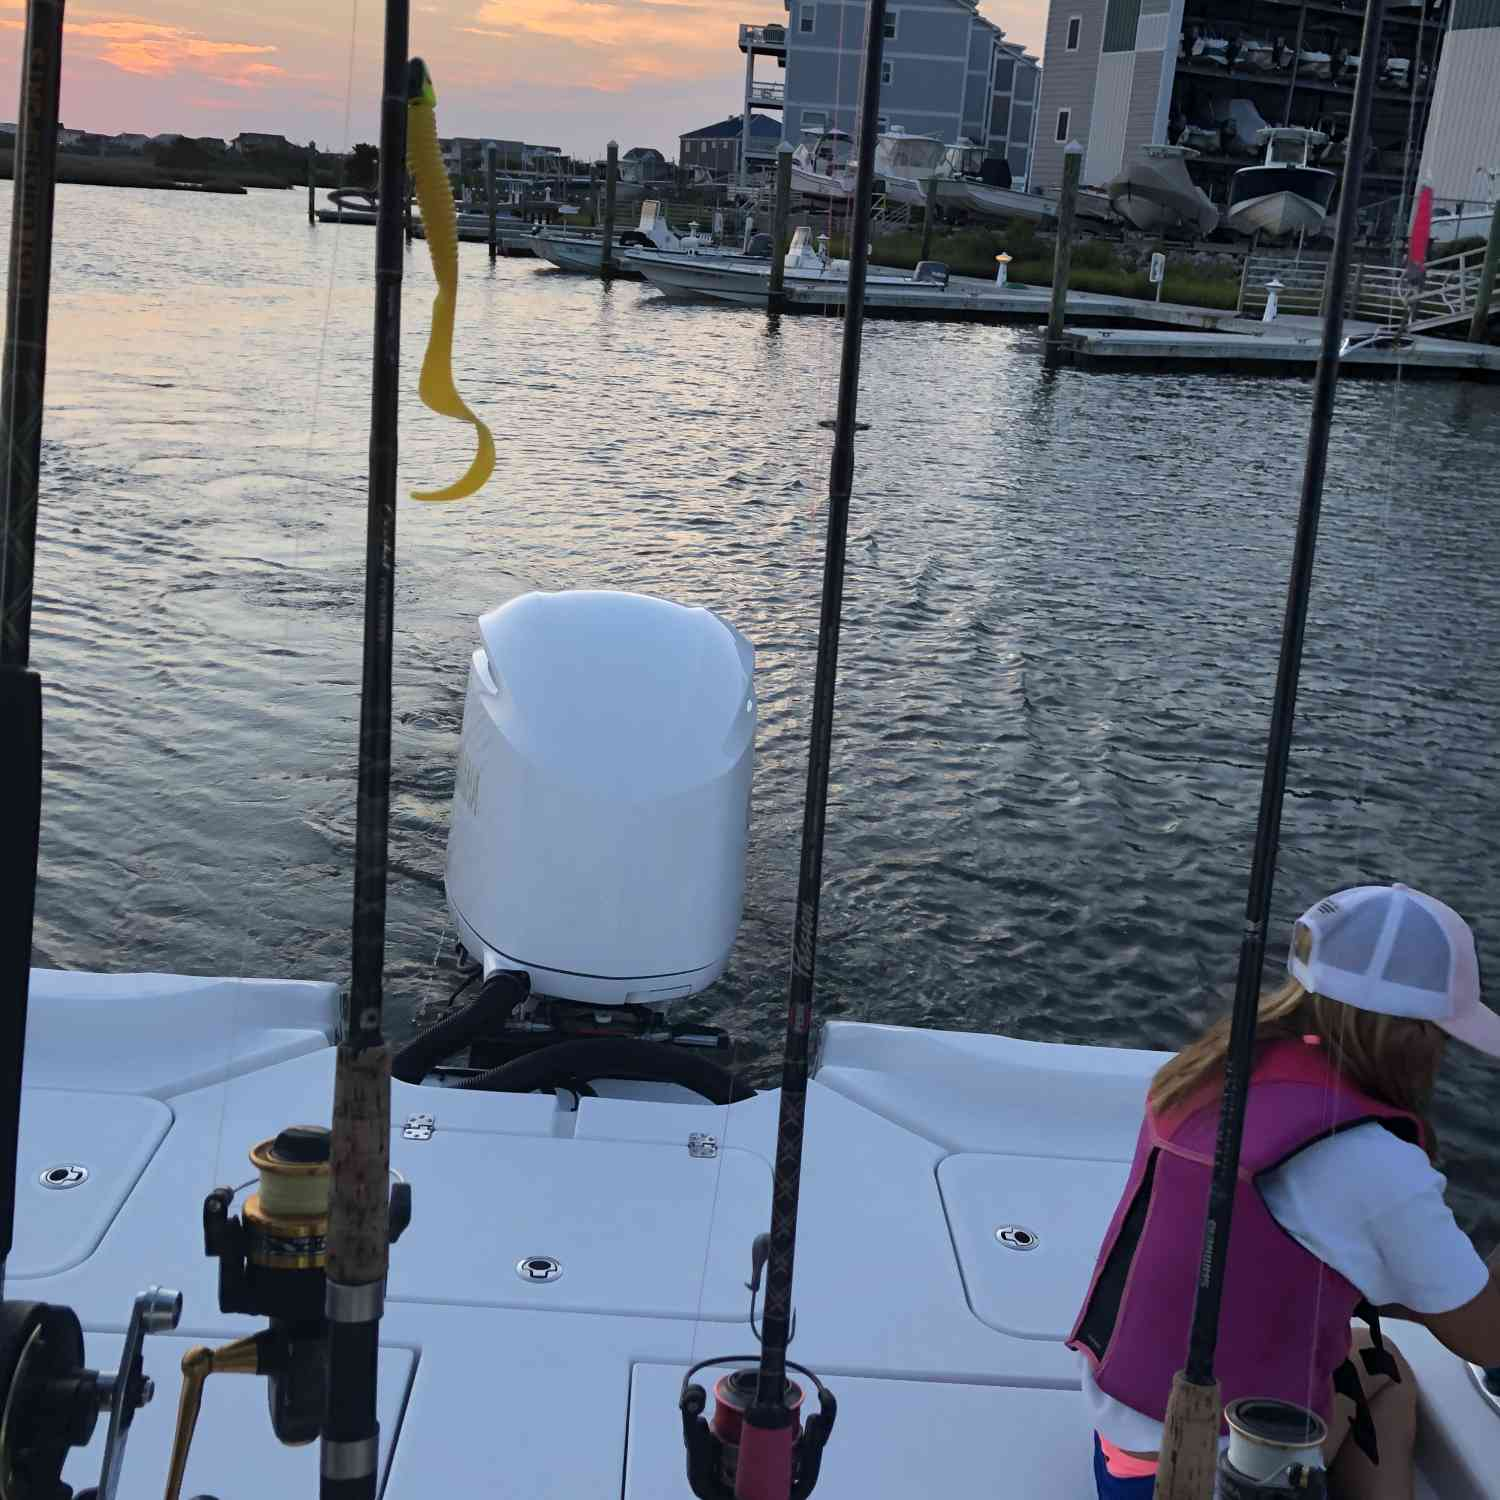 Title: Getting ready for a epic day fishing - On board their Sportsman Masters 267 Bay Boat - Location: Surf City, NC. Participating in the Photo Contest #SportsmanApril2020